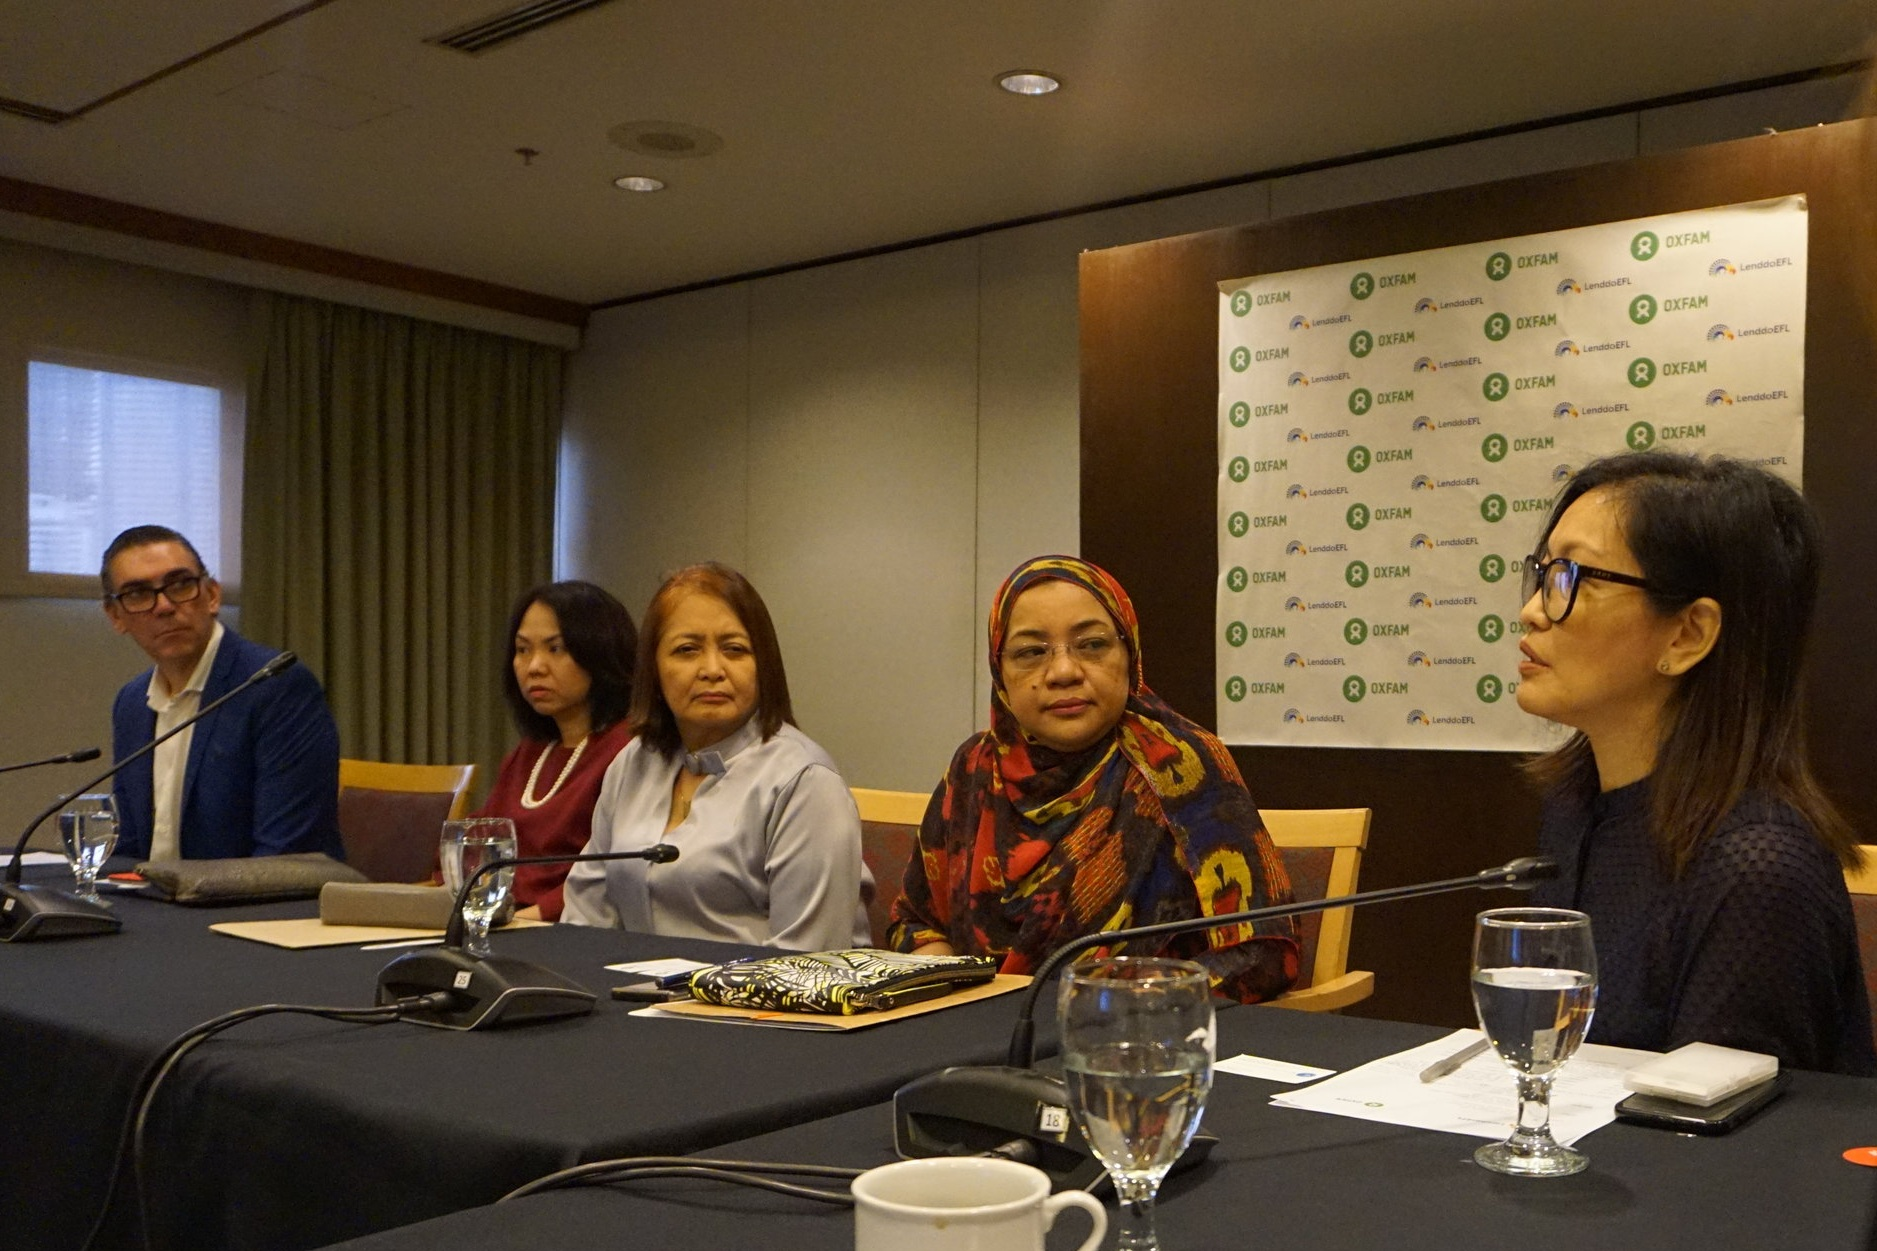 Oxfam Philippines Country Director, Maria Rosario Felizco sharing about their work in Cagayan region.